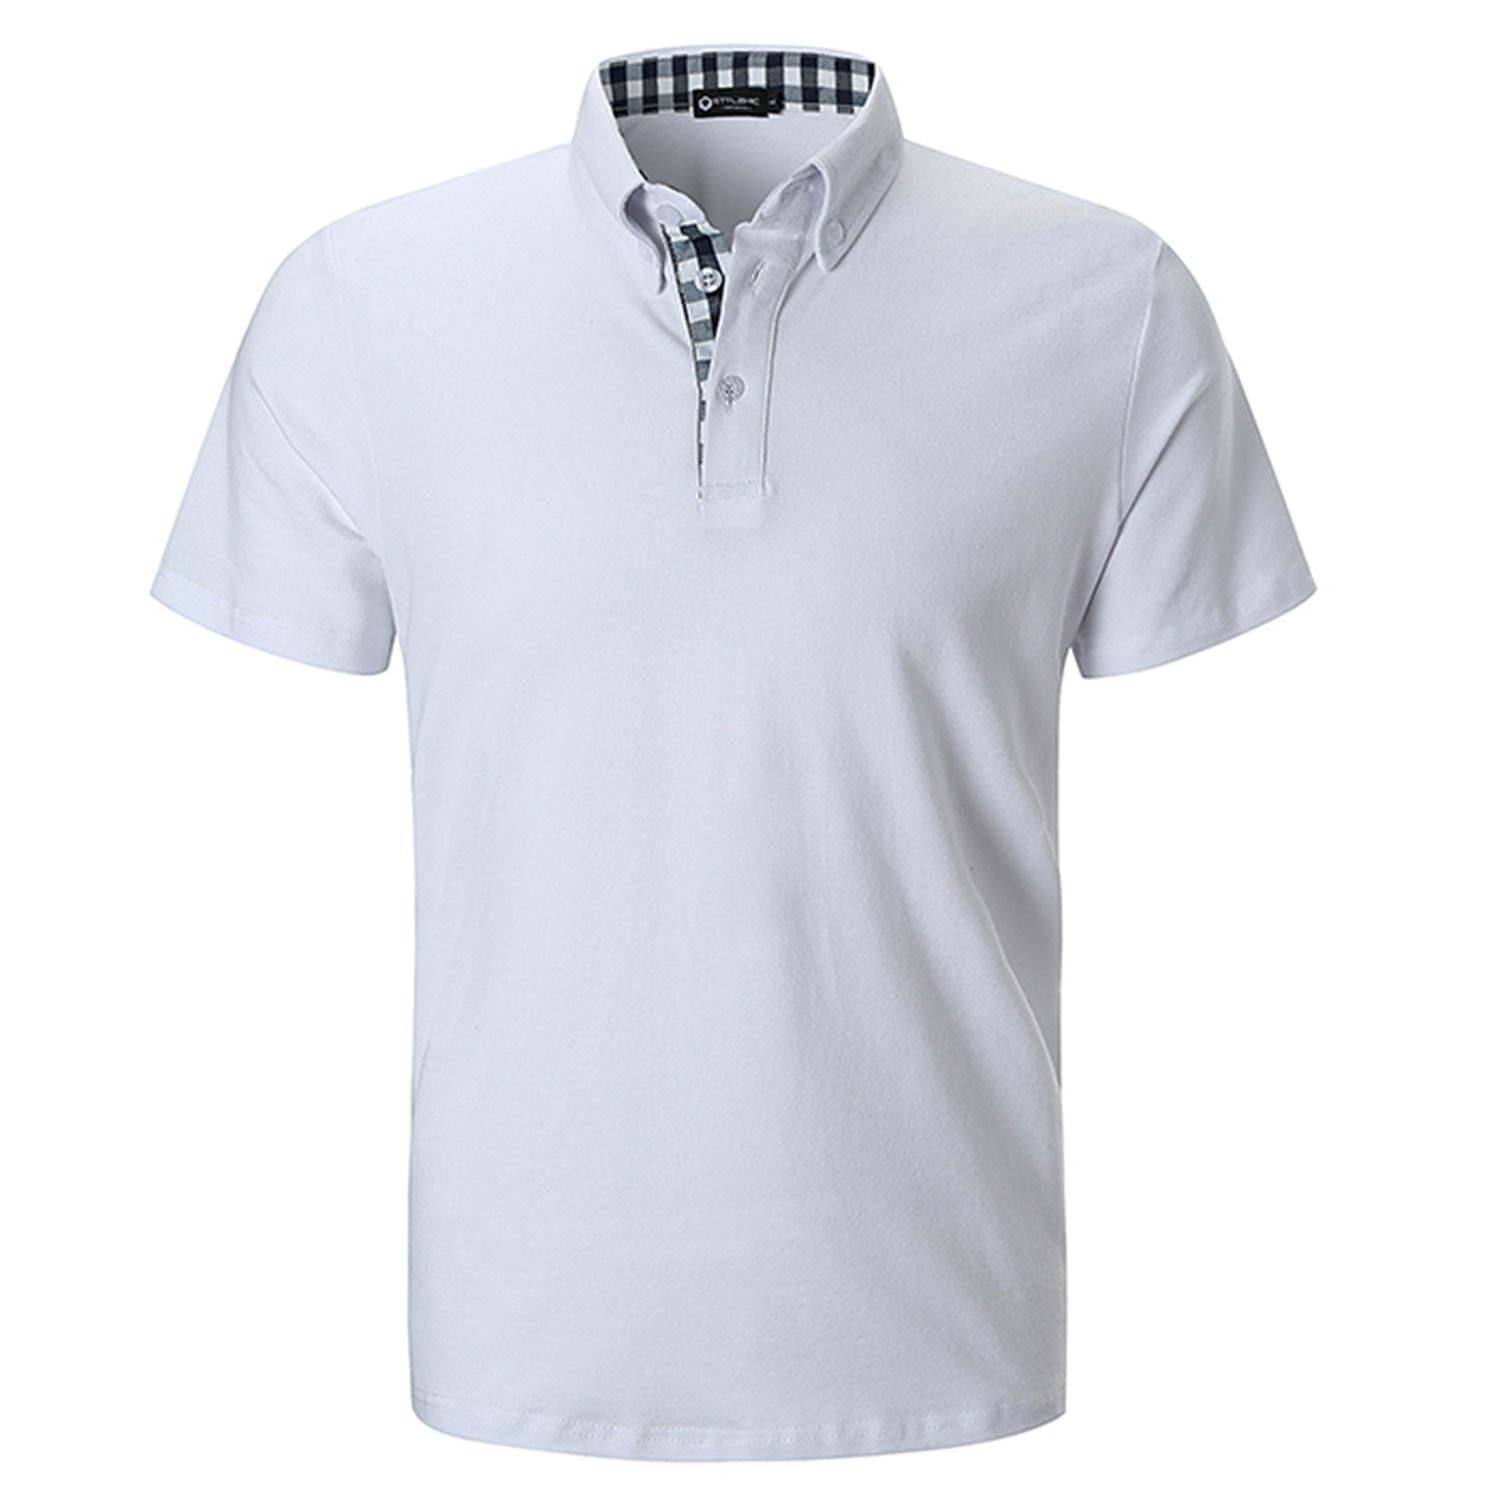 STTLZMC Men's Short Sleeve Polo Shirts Casual Fit Golf Solid Color Tops,White,Large